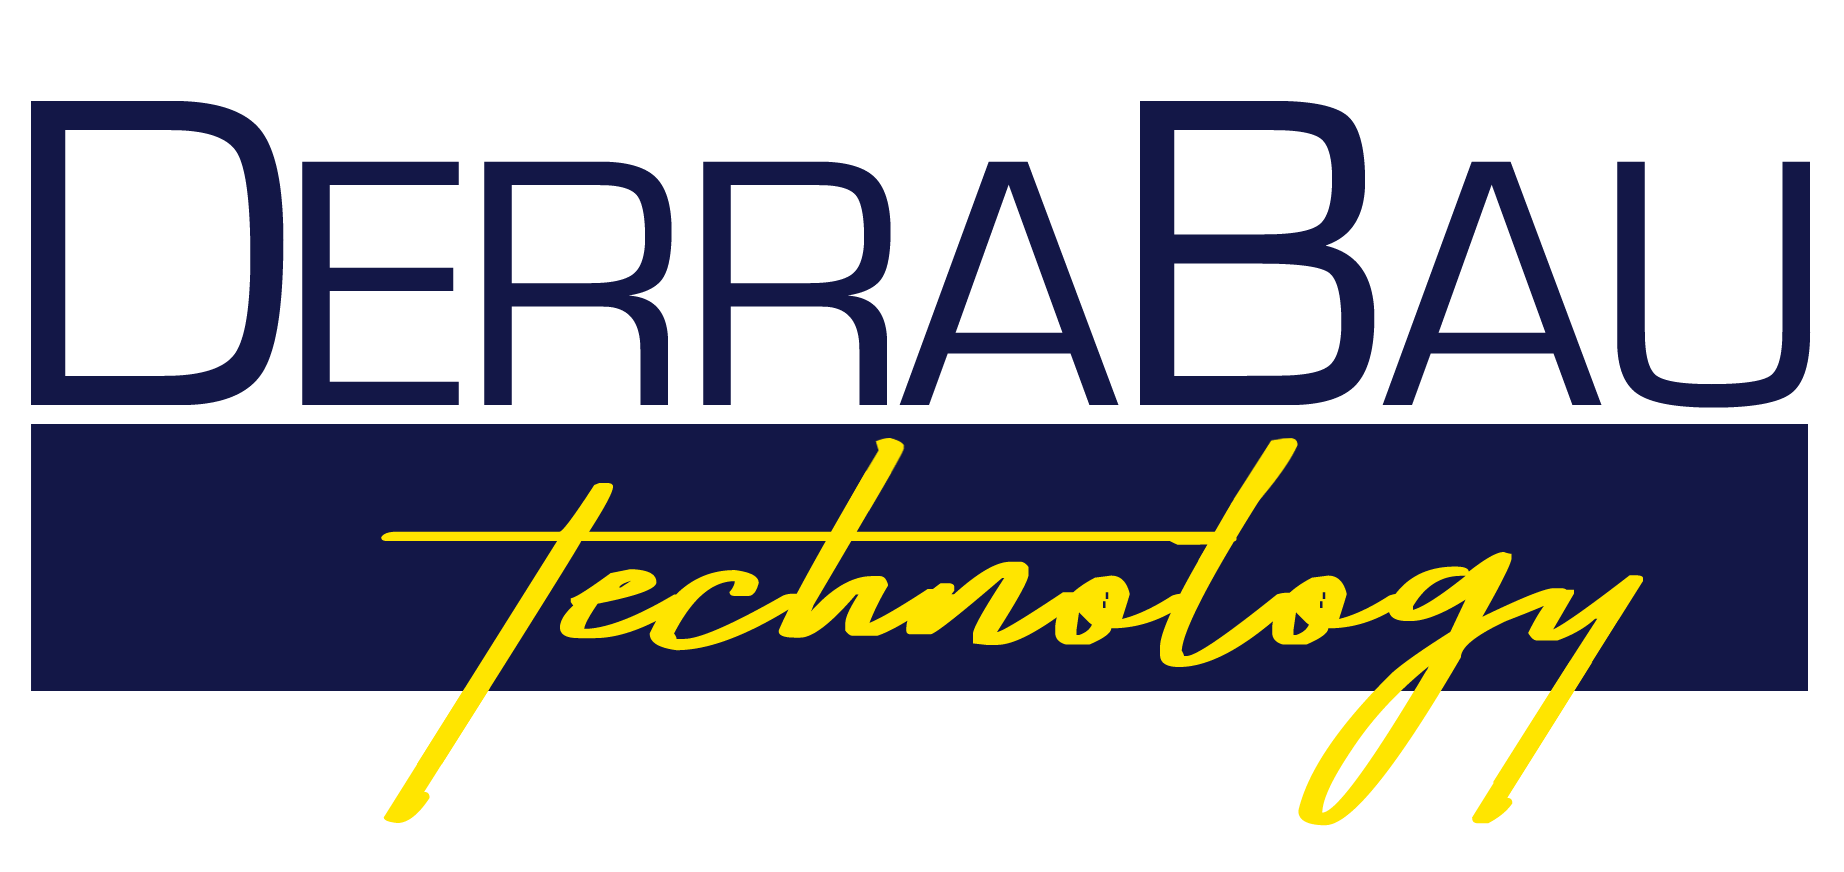 Derra Bau technology